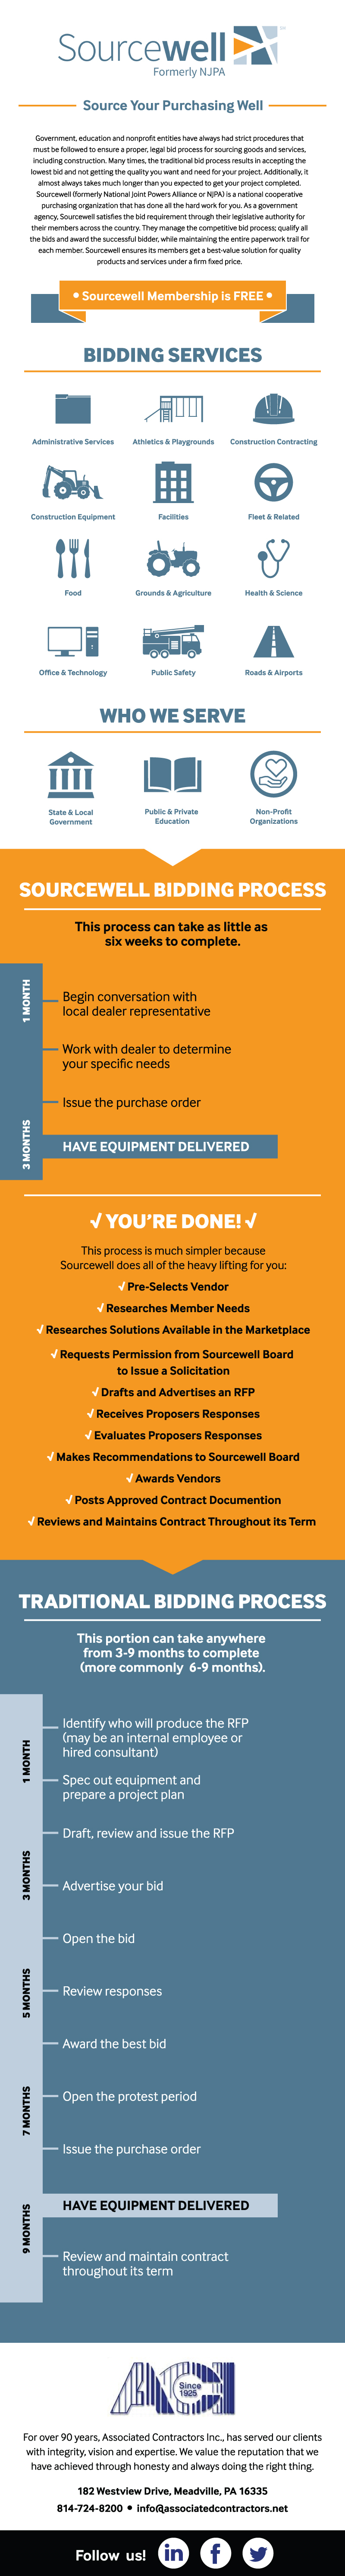 Sourcewell_Infographic_Final